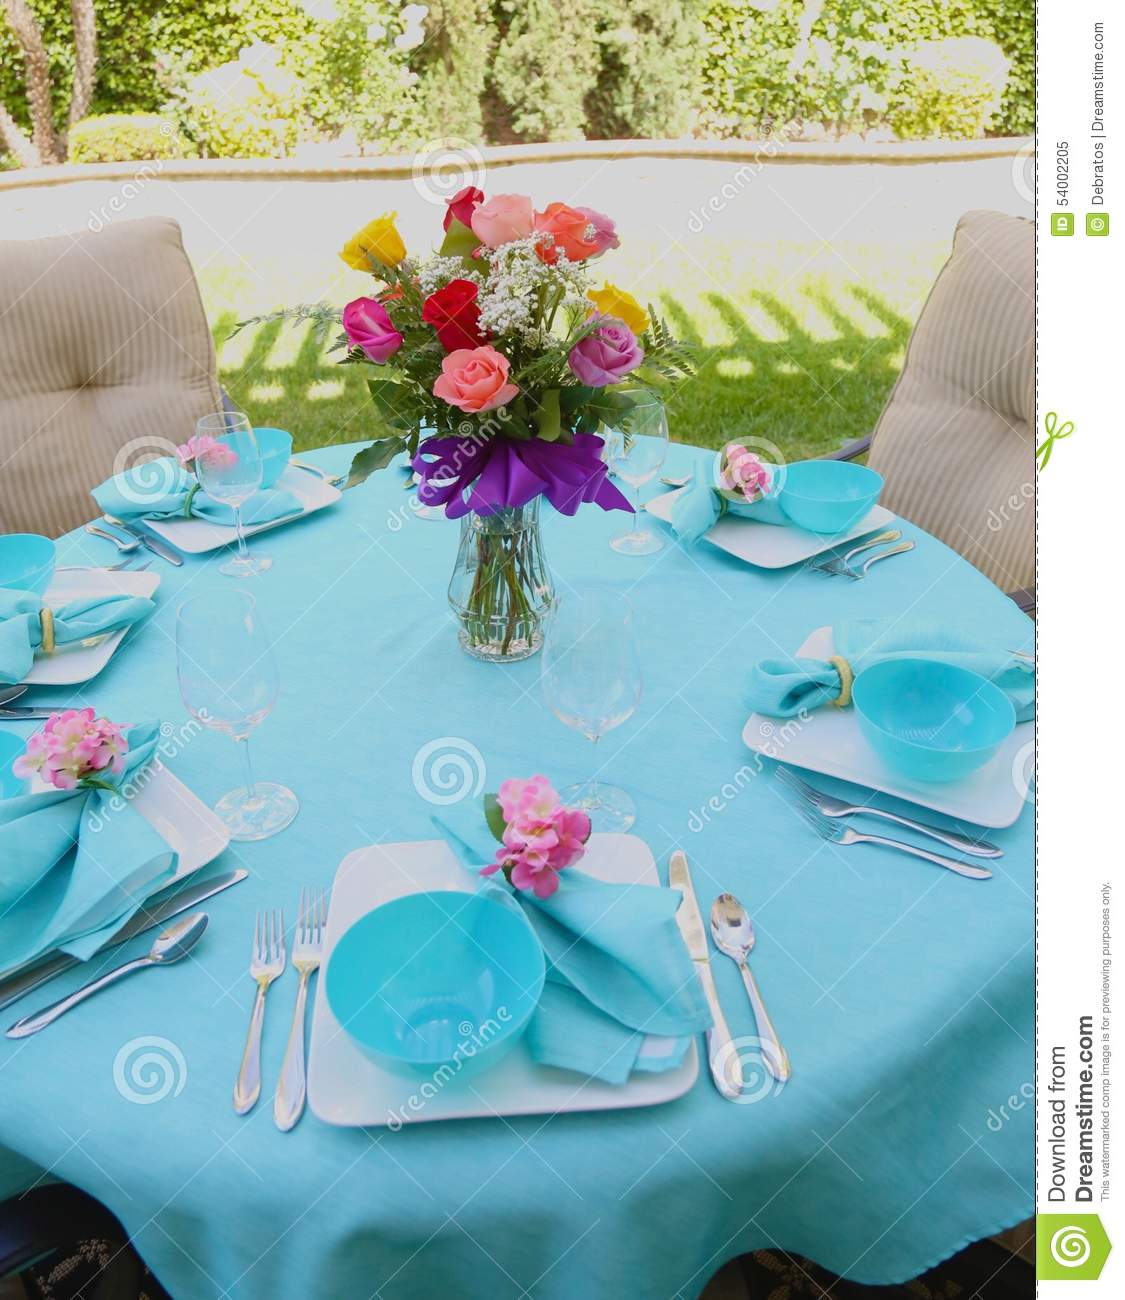 Brunch table setting stock image. Image of blue, table - 54002205